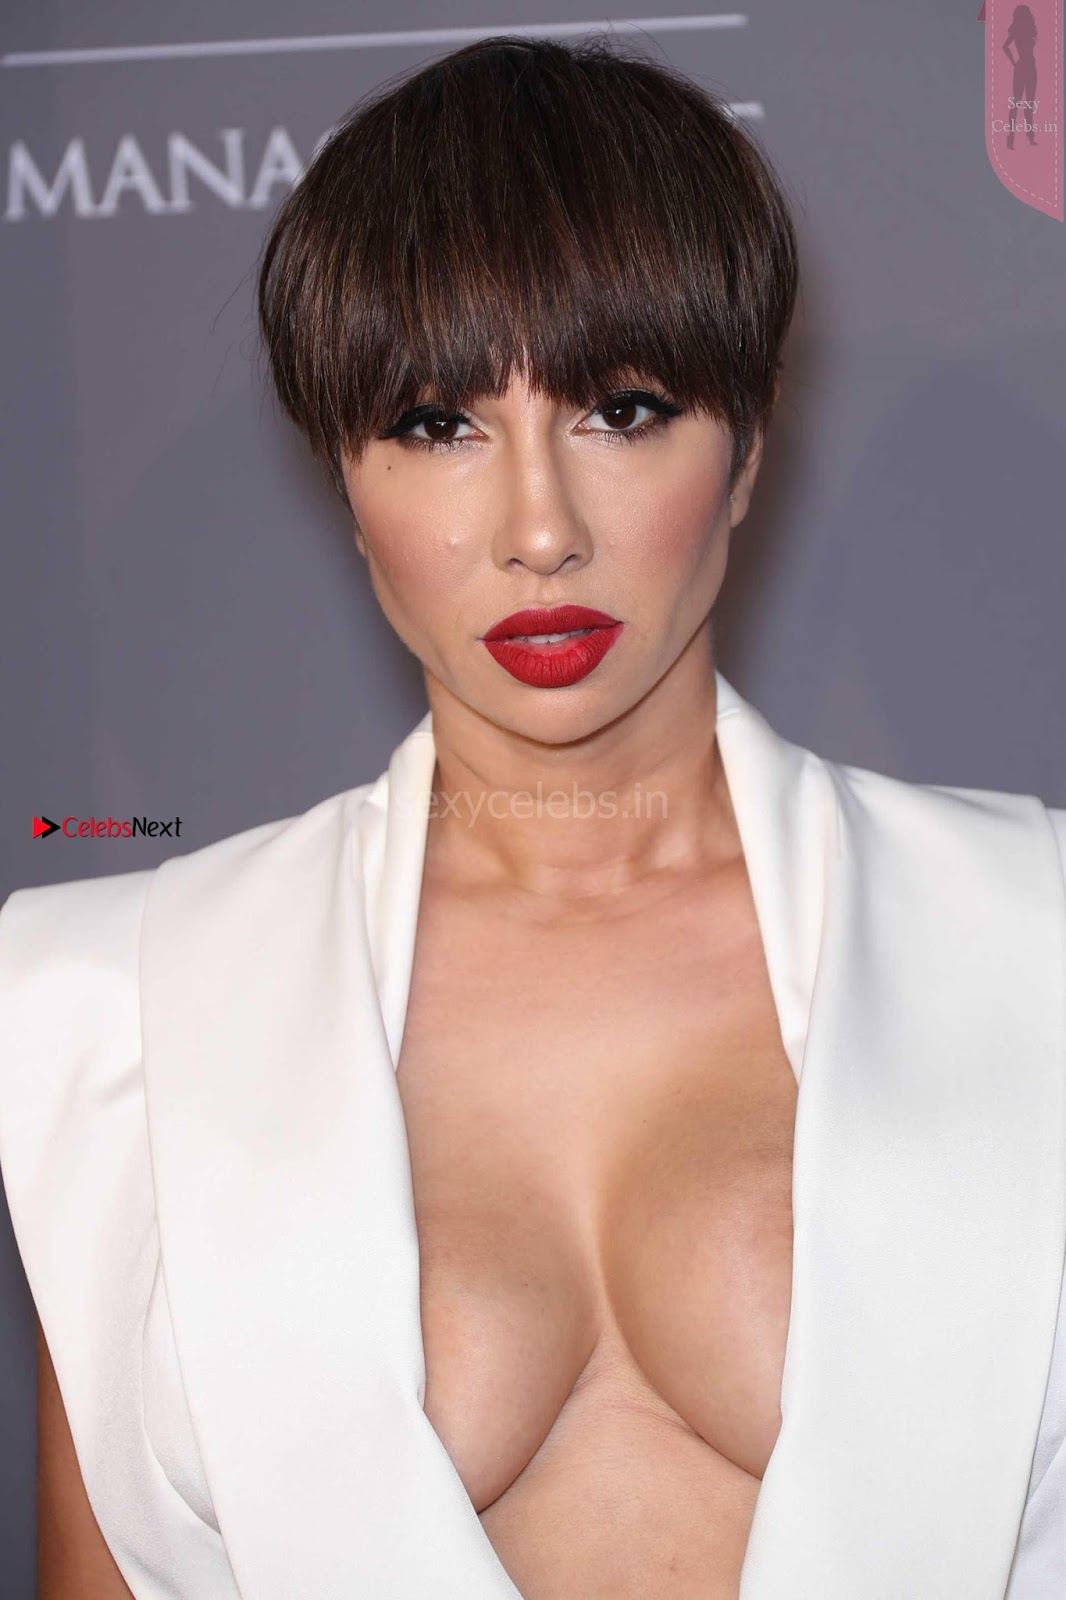 OMG Beautiful boobs of Jackie Cruz at 2018 amfAR Gala in New York ~ SexyCelebs.in Exclusive